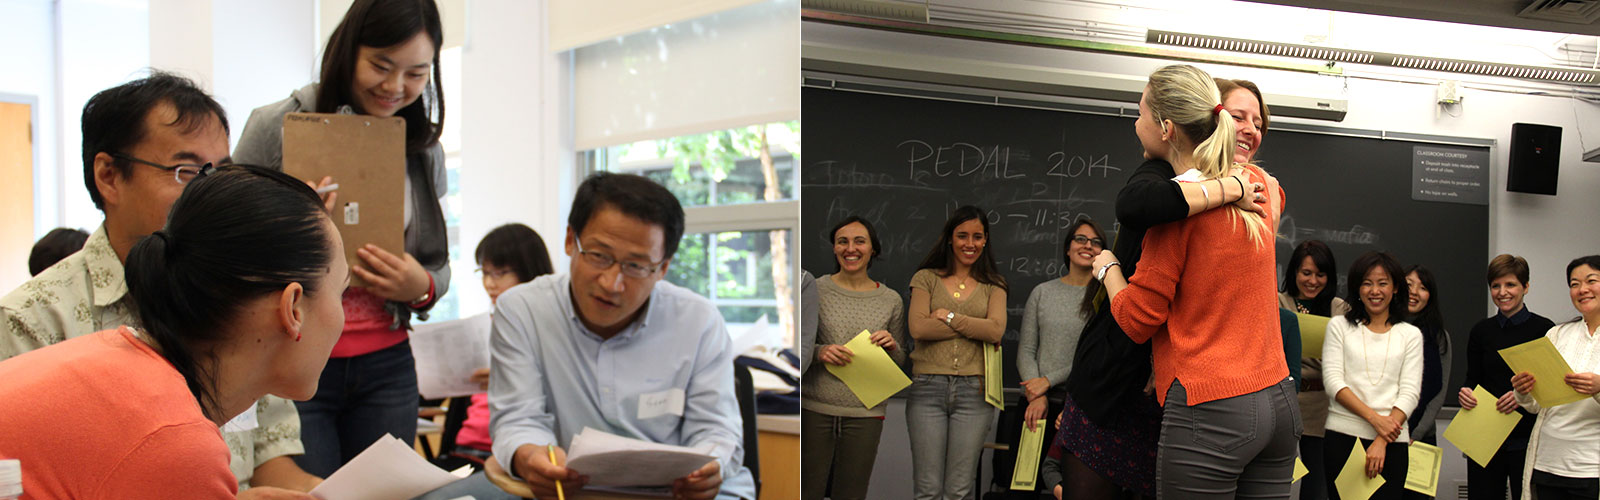 Two photos: On left, close up of three students talking with a teacher standing behind them. On right, two people hugging in classroom with classmates looking on.